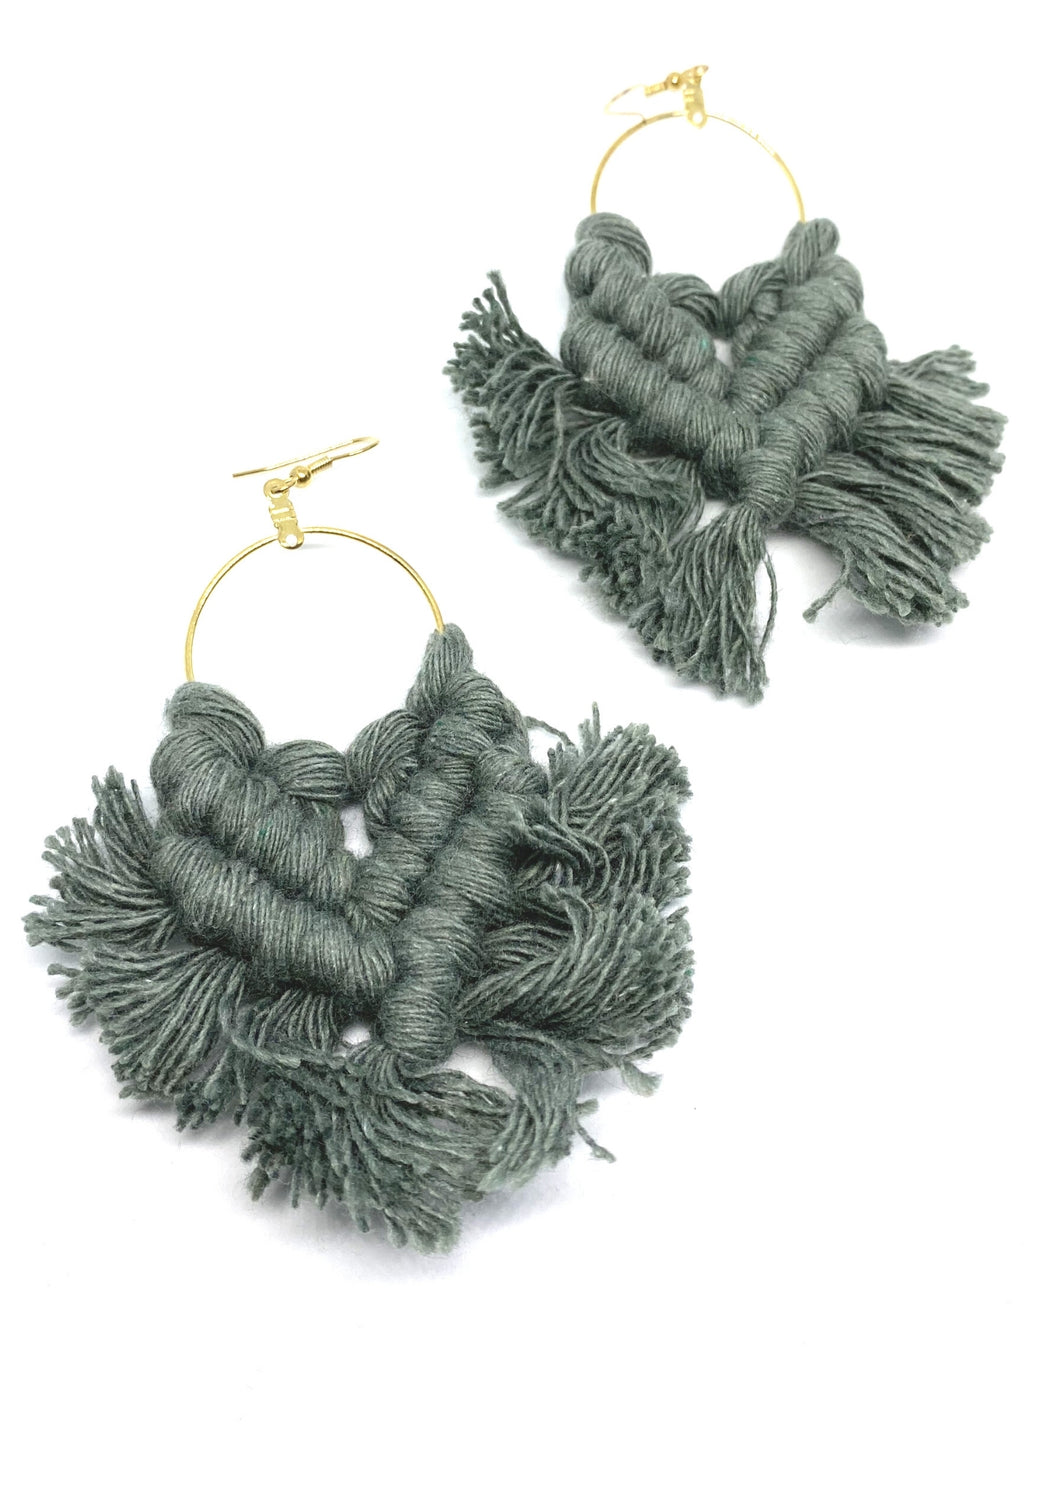 Macrame Hoop Earrings